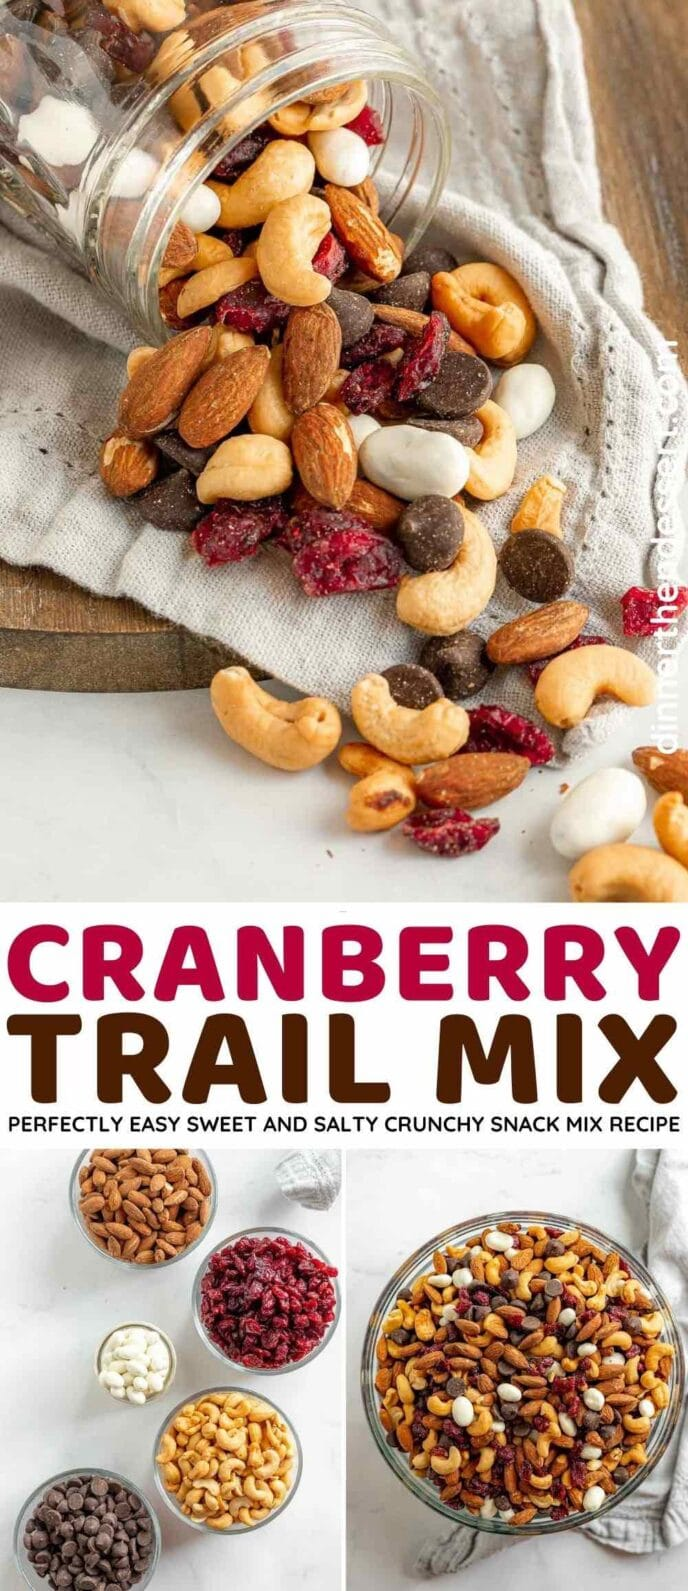 Cranberry Trail Mix collage